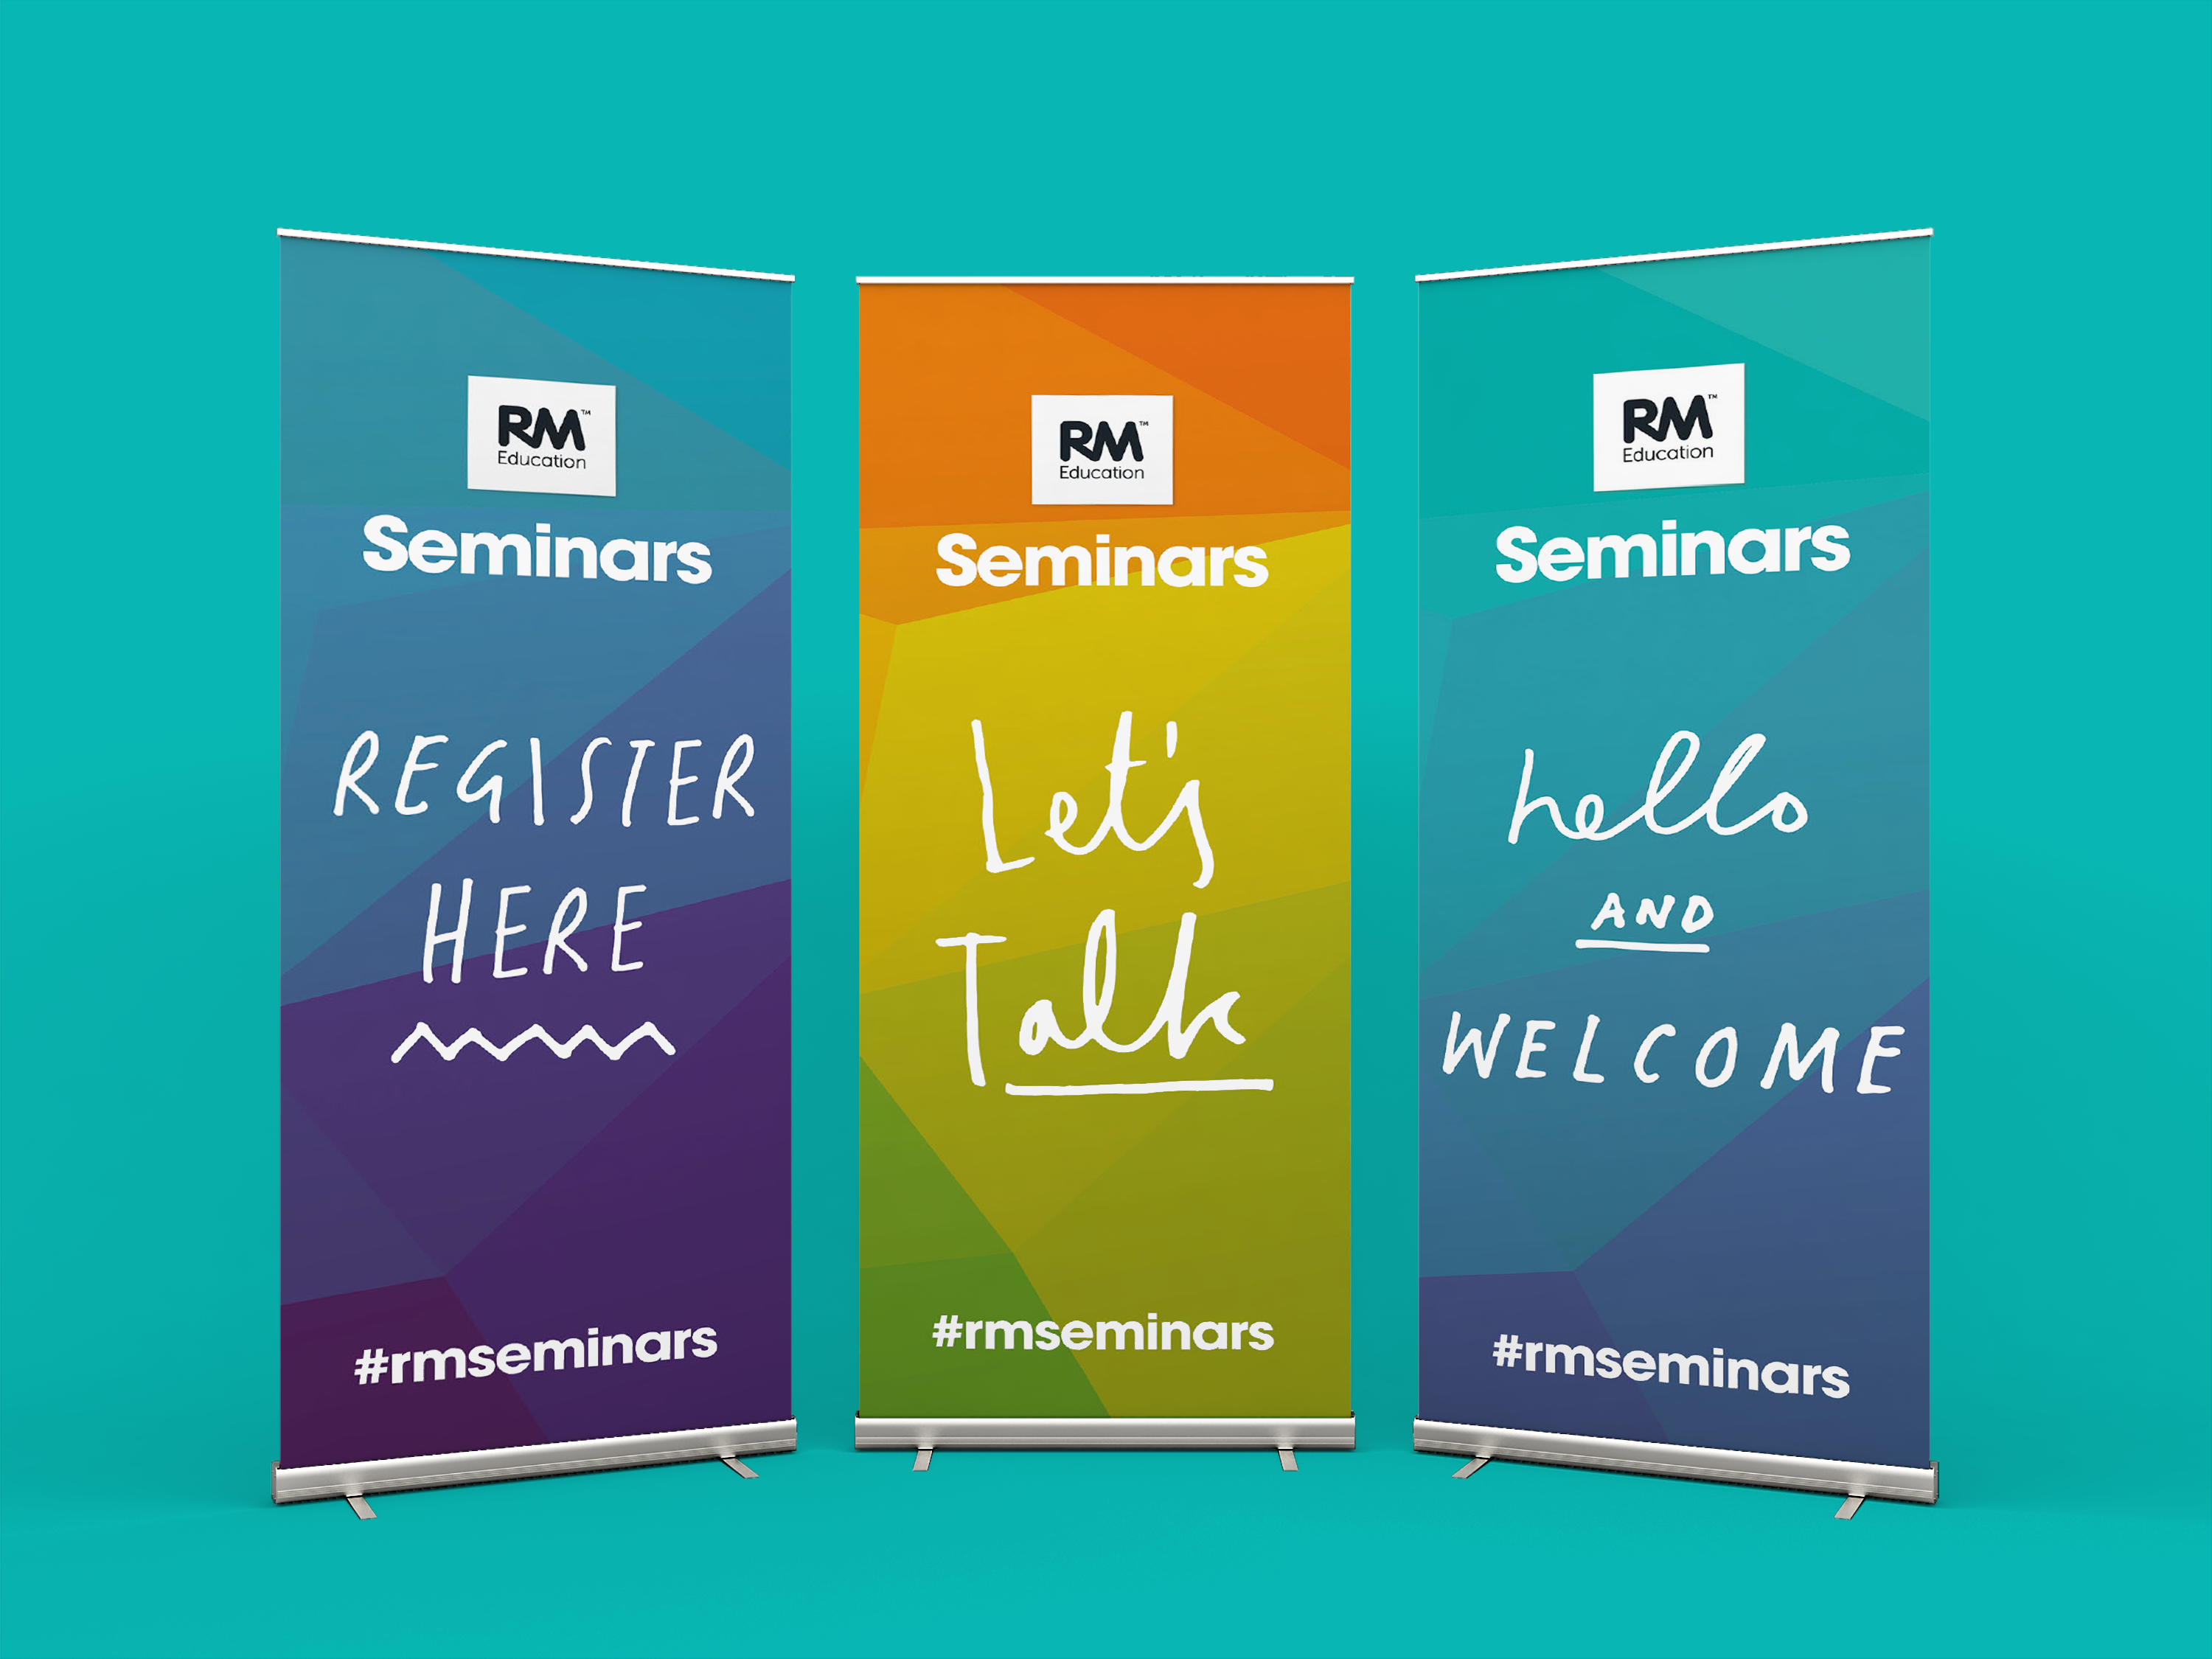 Three roll up banners with colourful background graphics saying 'Register here', 'Let's Talk' and 'Hellow and Welcome' all with RM Seminars logo.